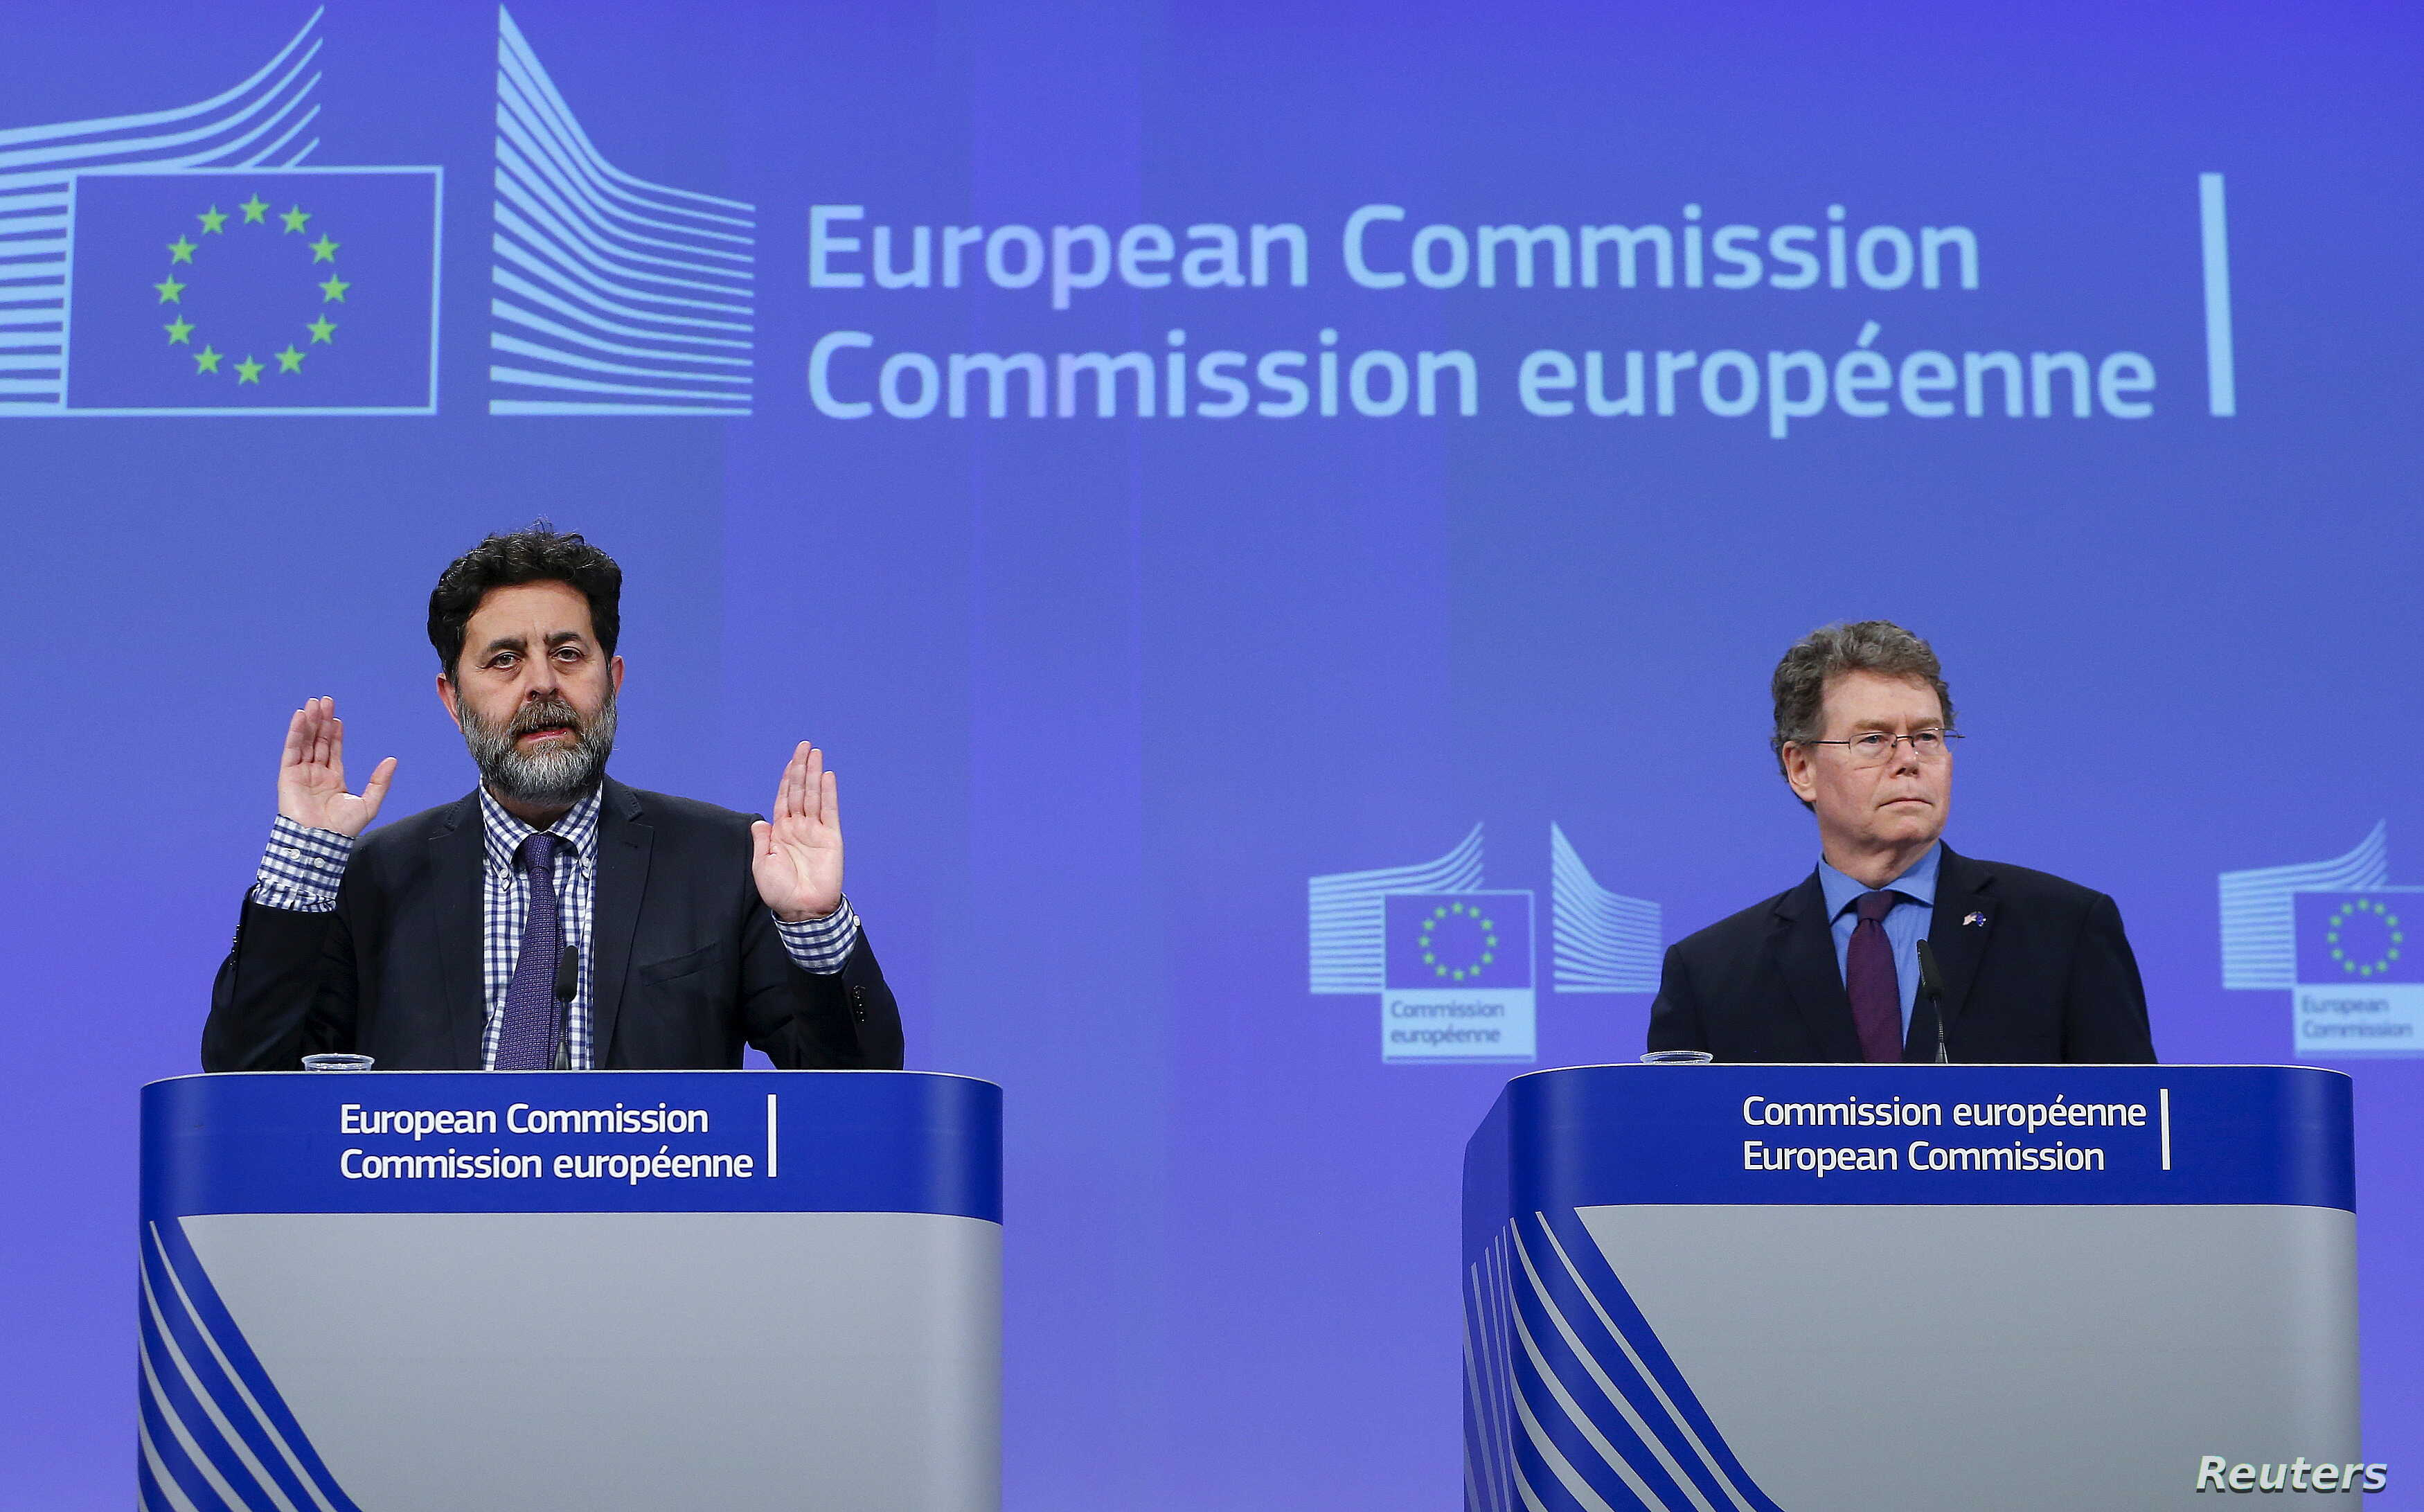 European Union chief negotiator Ignacio Garcia Bercero, left, and U.S. chief negotiator Dan Mullaney speak to reporters after the 12th round of E.U.-U.S. trade negotiations for the Transatlantic Trade and Investment Partnership (TTIP) in Brussels, Be...